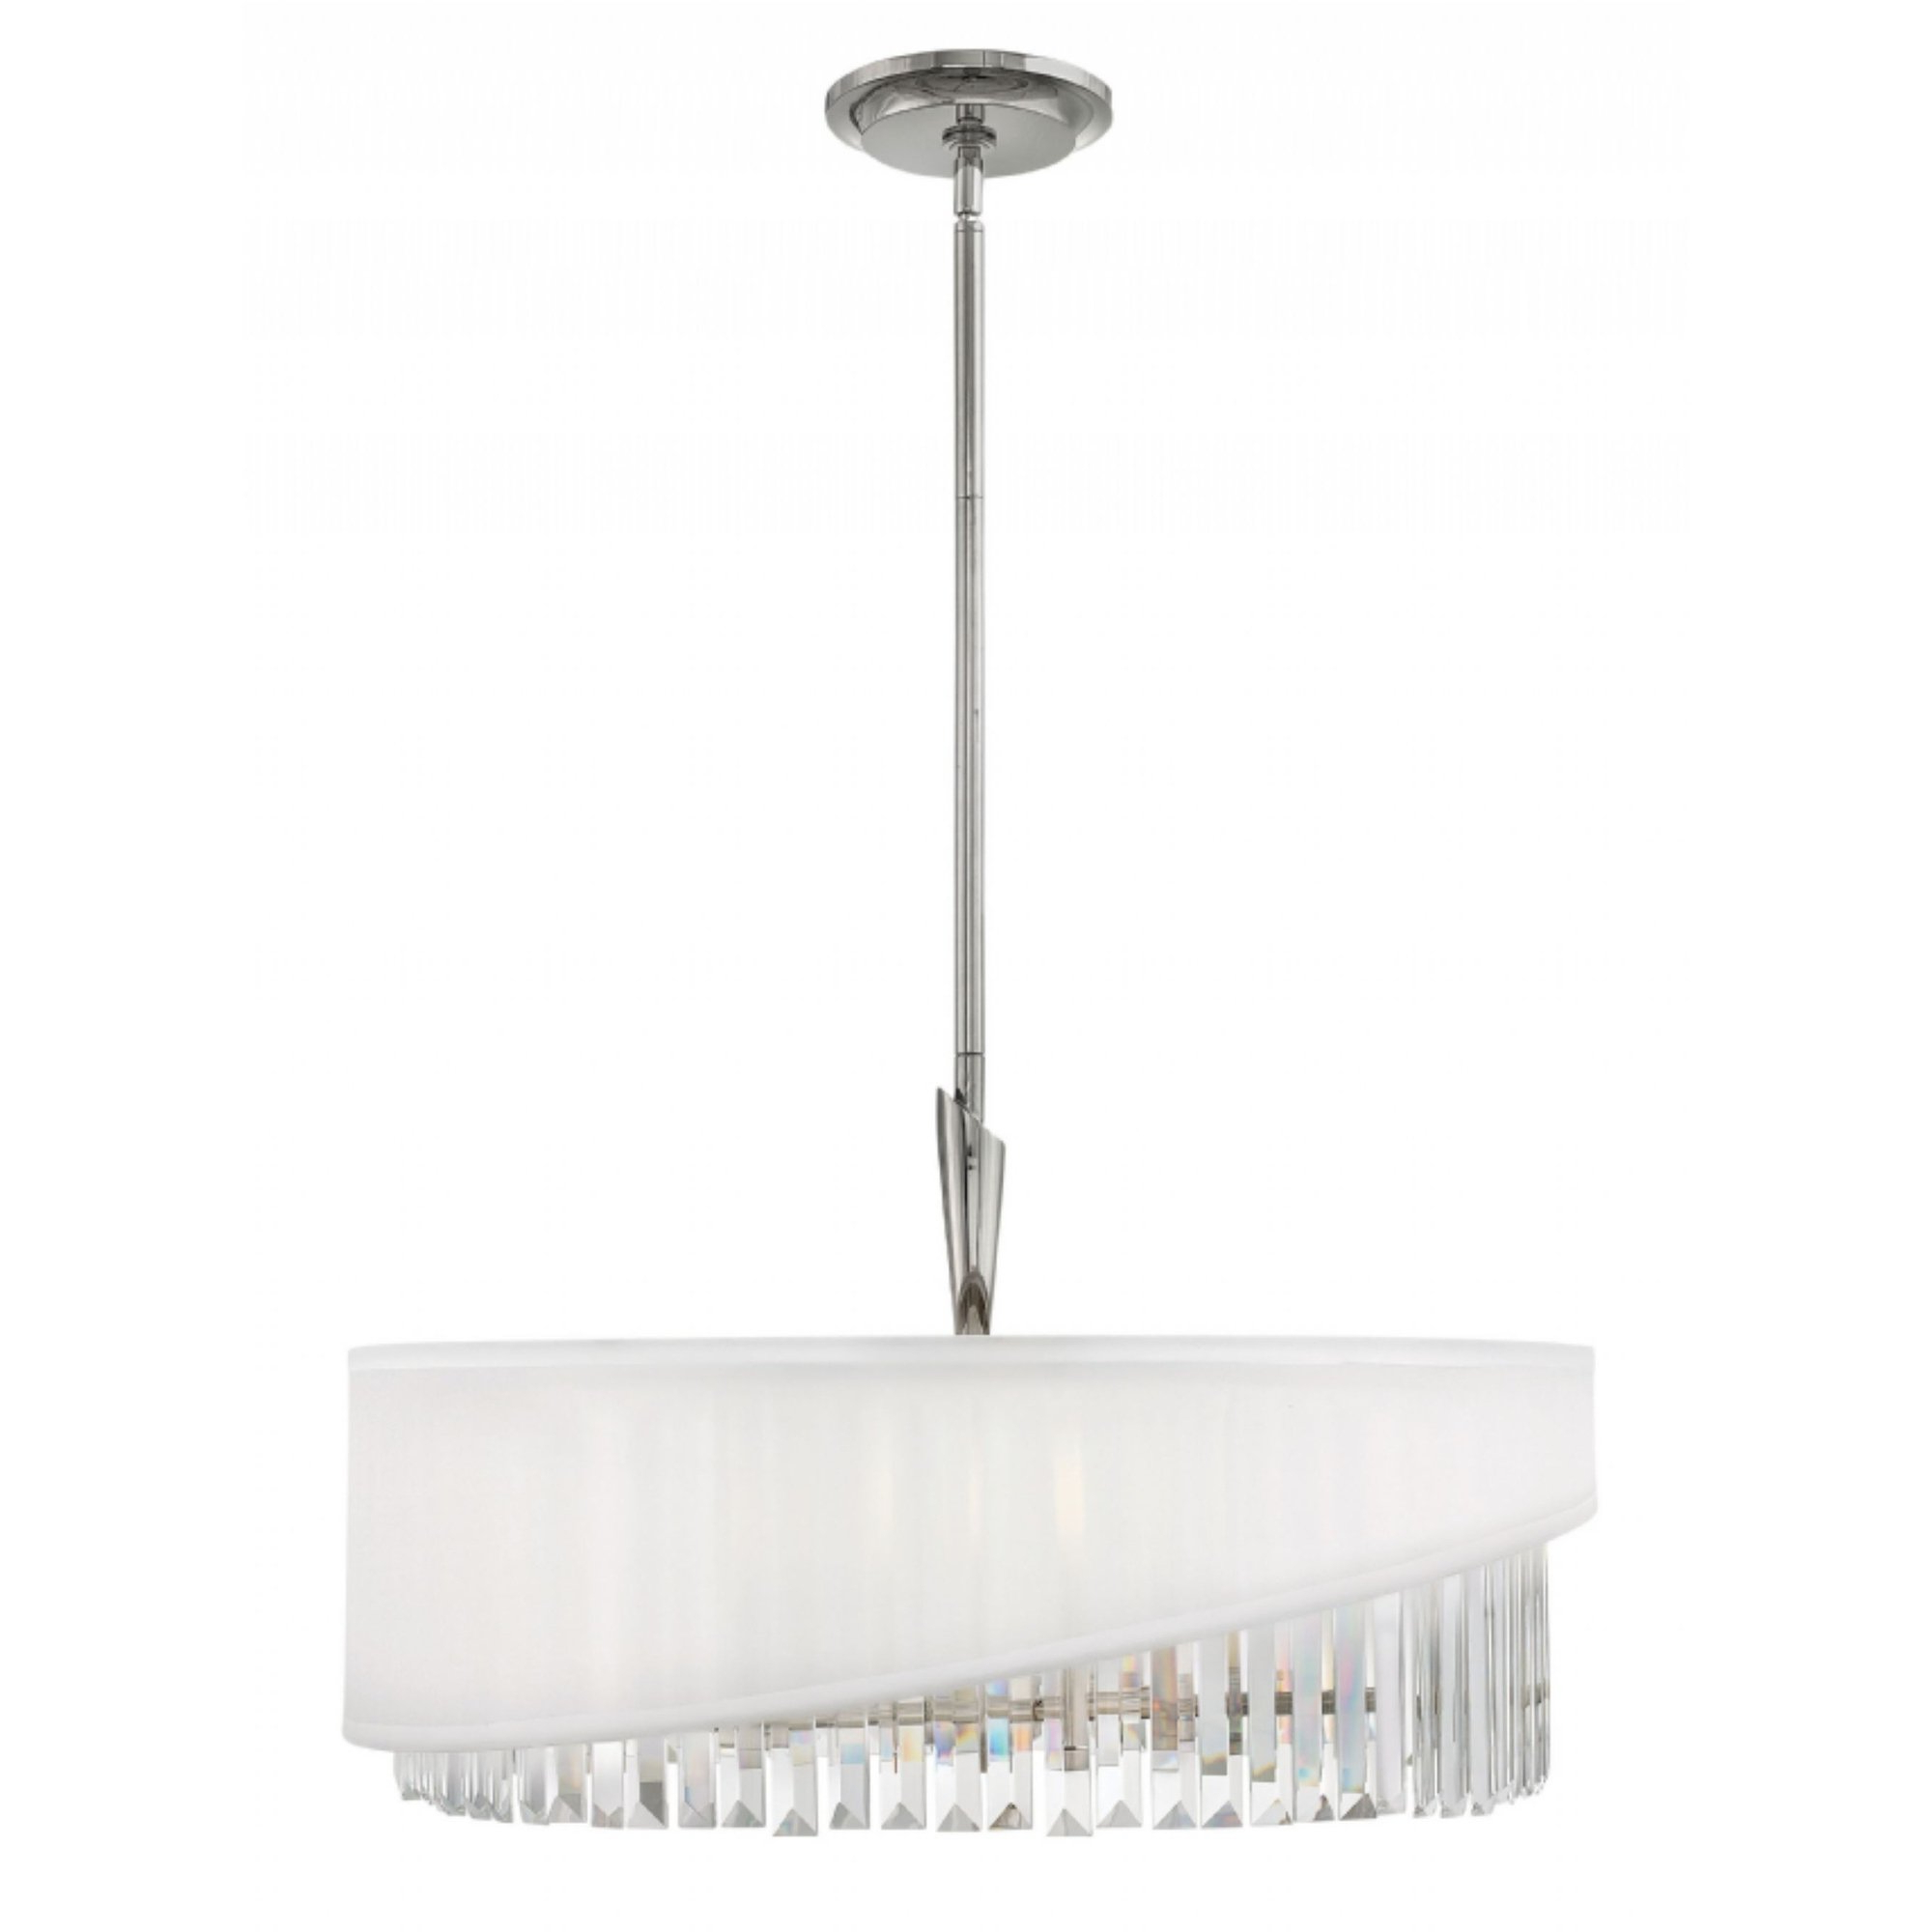 Alina 5 Light Drum Chandeliers With Well Liked Fredrick Ramond Gigi 5 Light Chandelier In Polished Nickel (View 8 of 20)